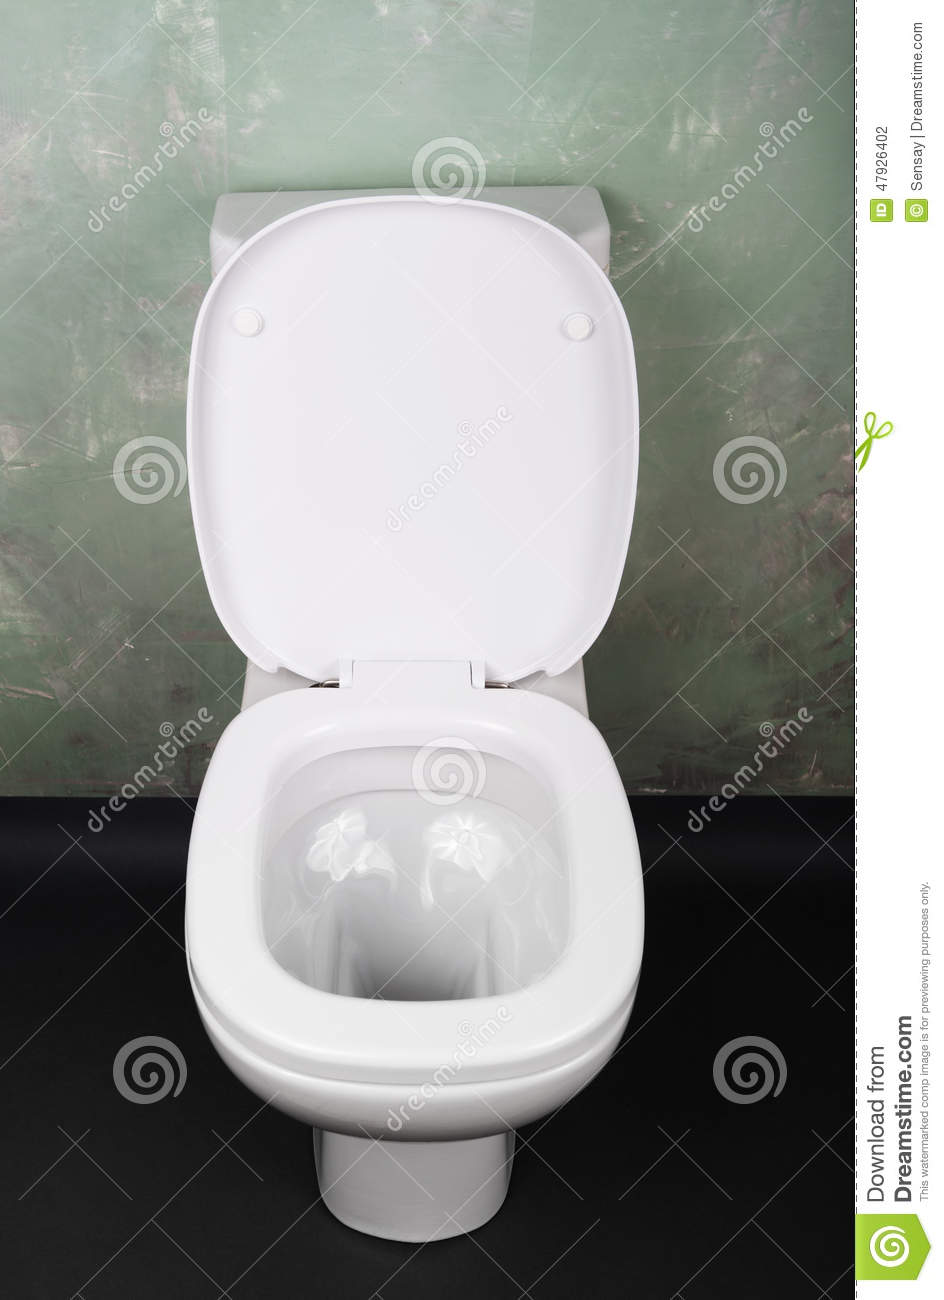 modern toilet bowl stock photo  image  - bathroom bowl modern toilet